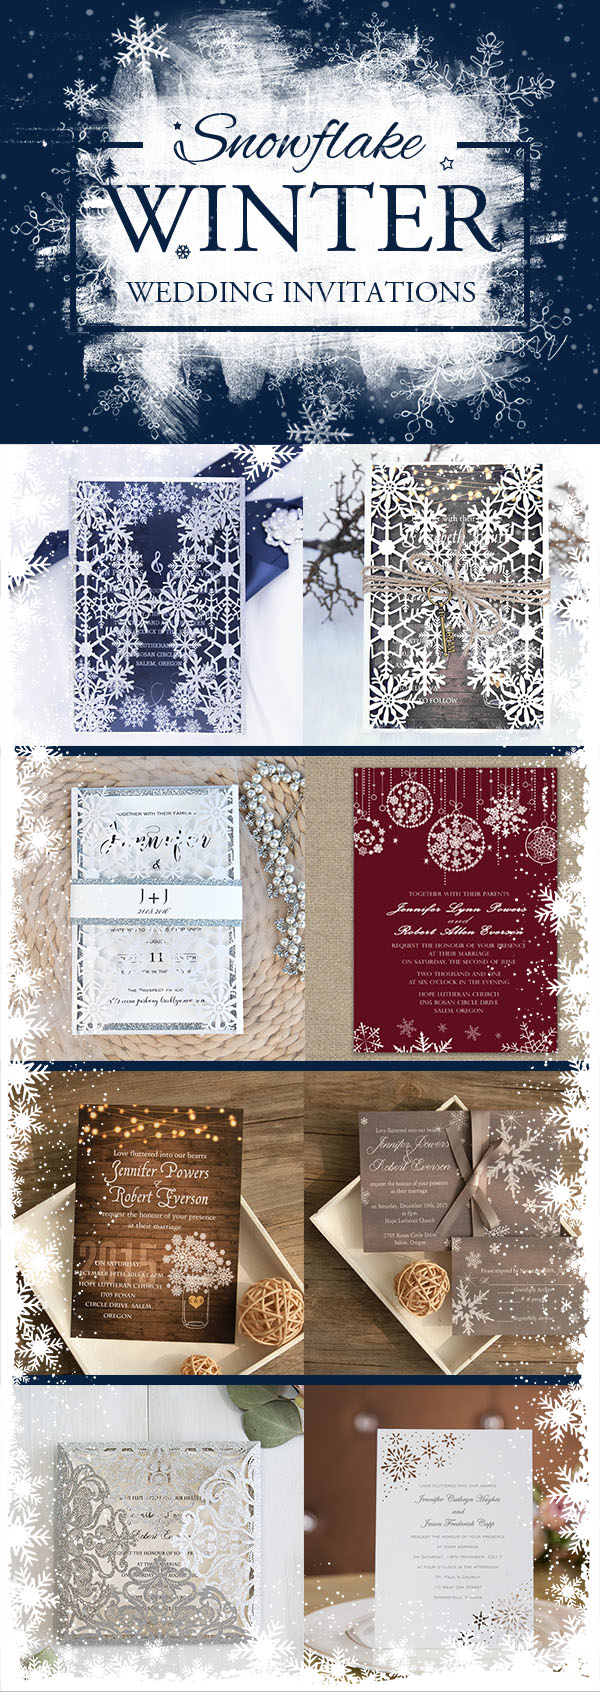 Snowflake Wedding Invitations Ideas For Winter